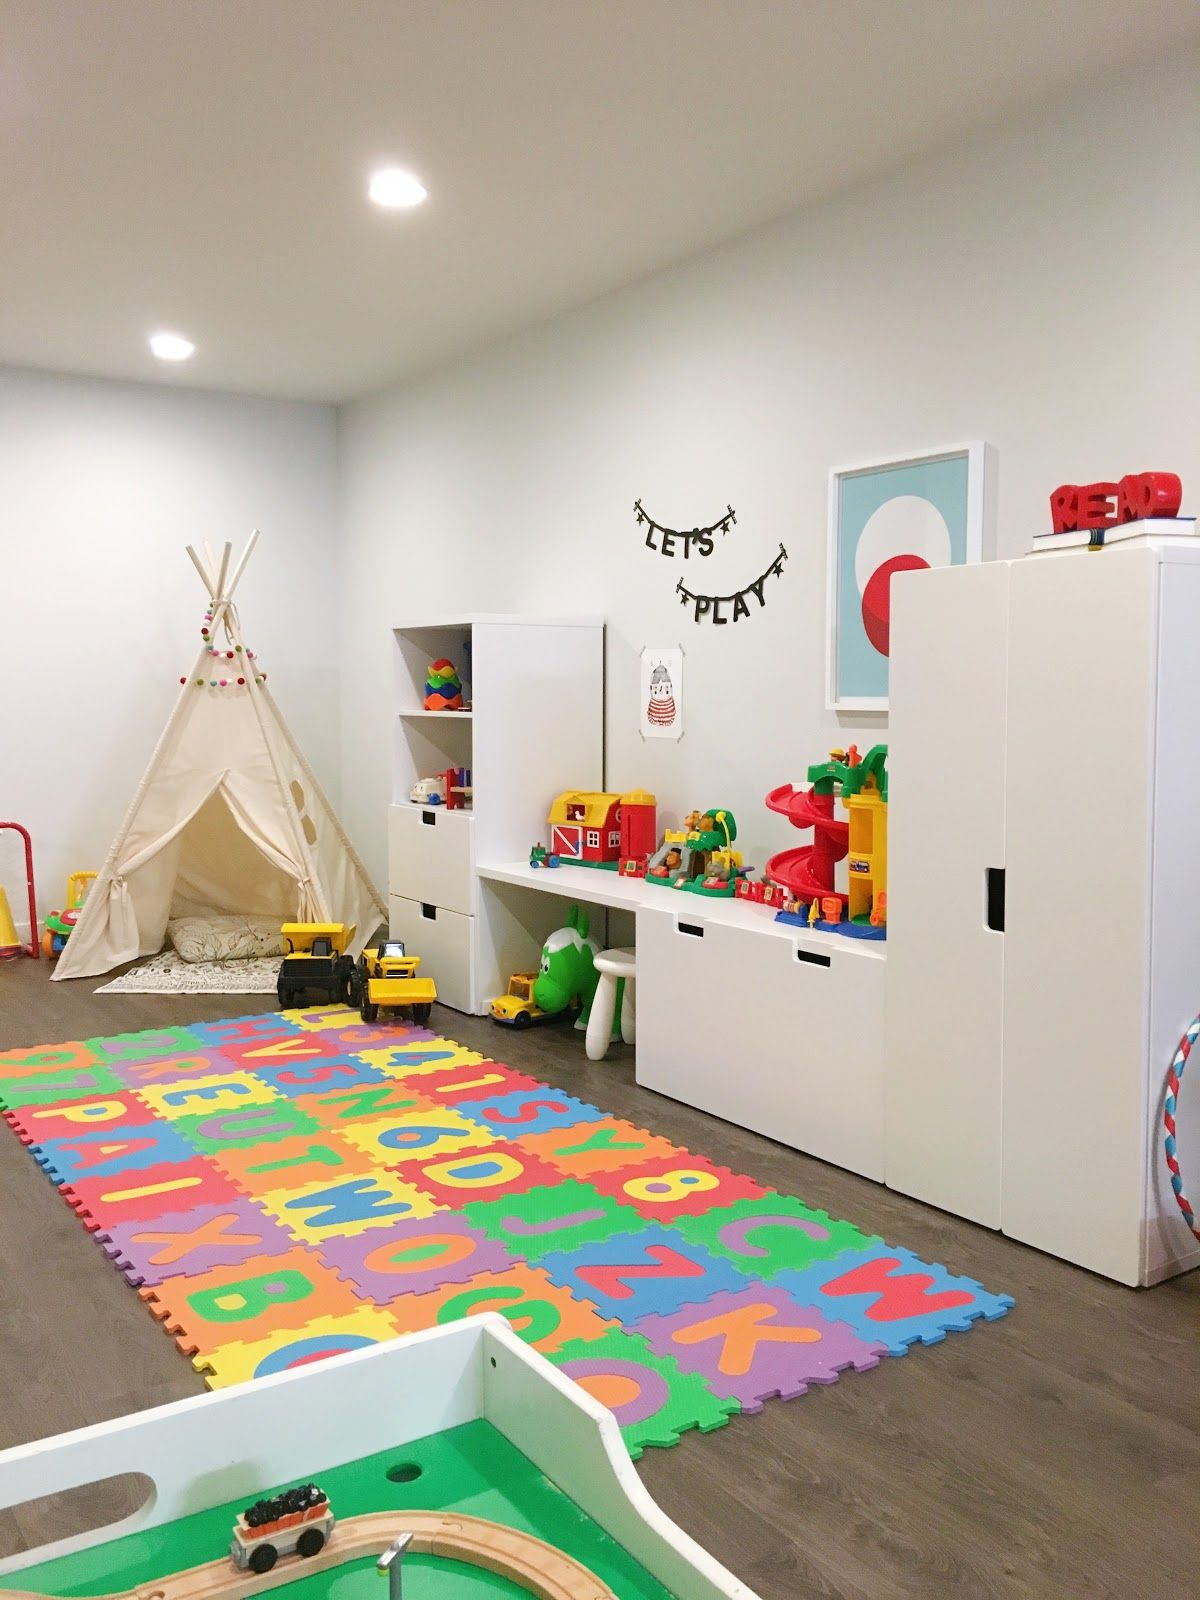 Dormitorio Niños Ikea Playroom With Ikea Stuva System Stuva